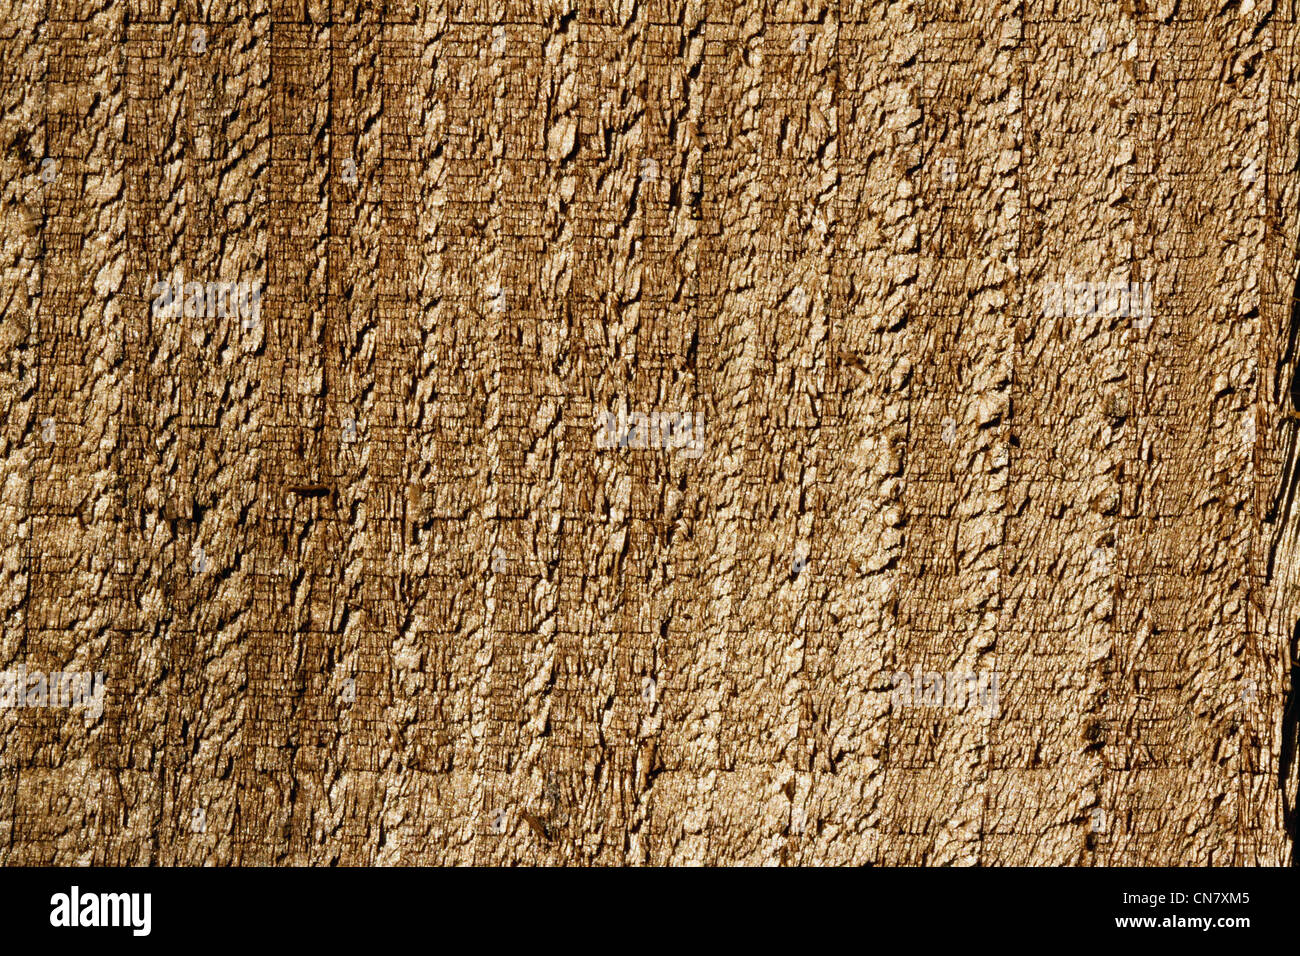 close up of a wooden fence panel showing texture Stock Photo